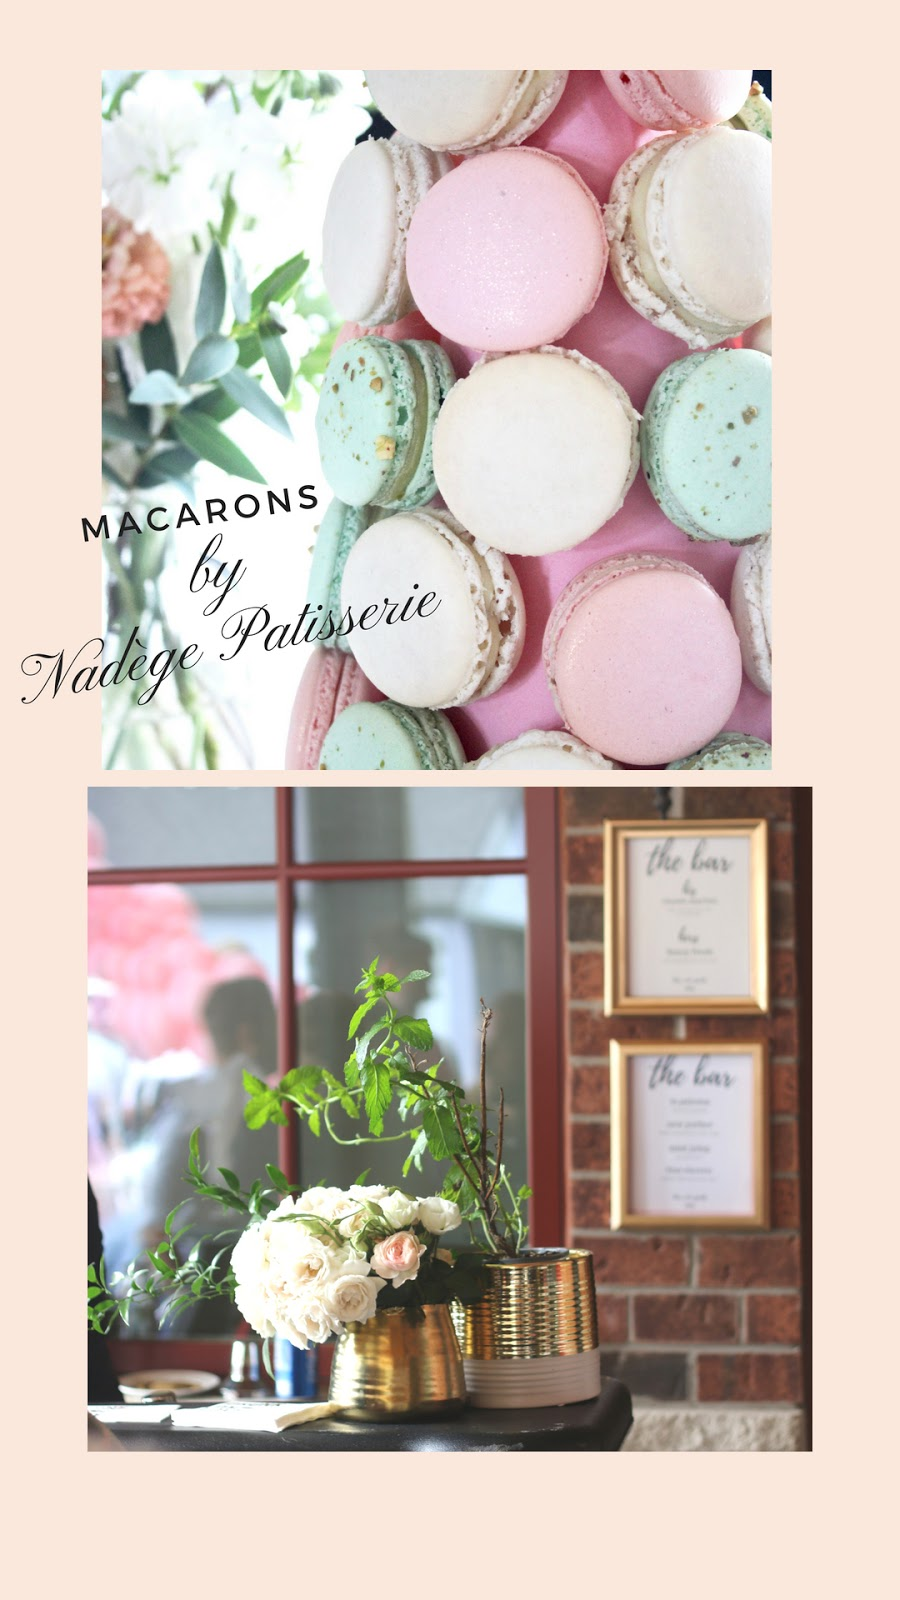 How to Throw a Large Event, Engagement Party Ideas, Summer Engagement Party, Nadege, Sugargirlee, The Fix + Co, Toronto vegan caterer, Honey white engagement outfit